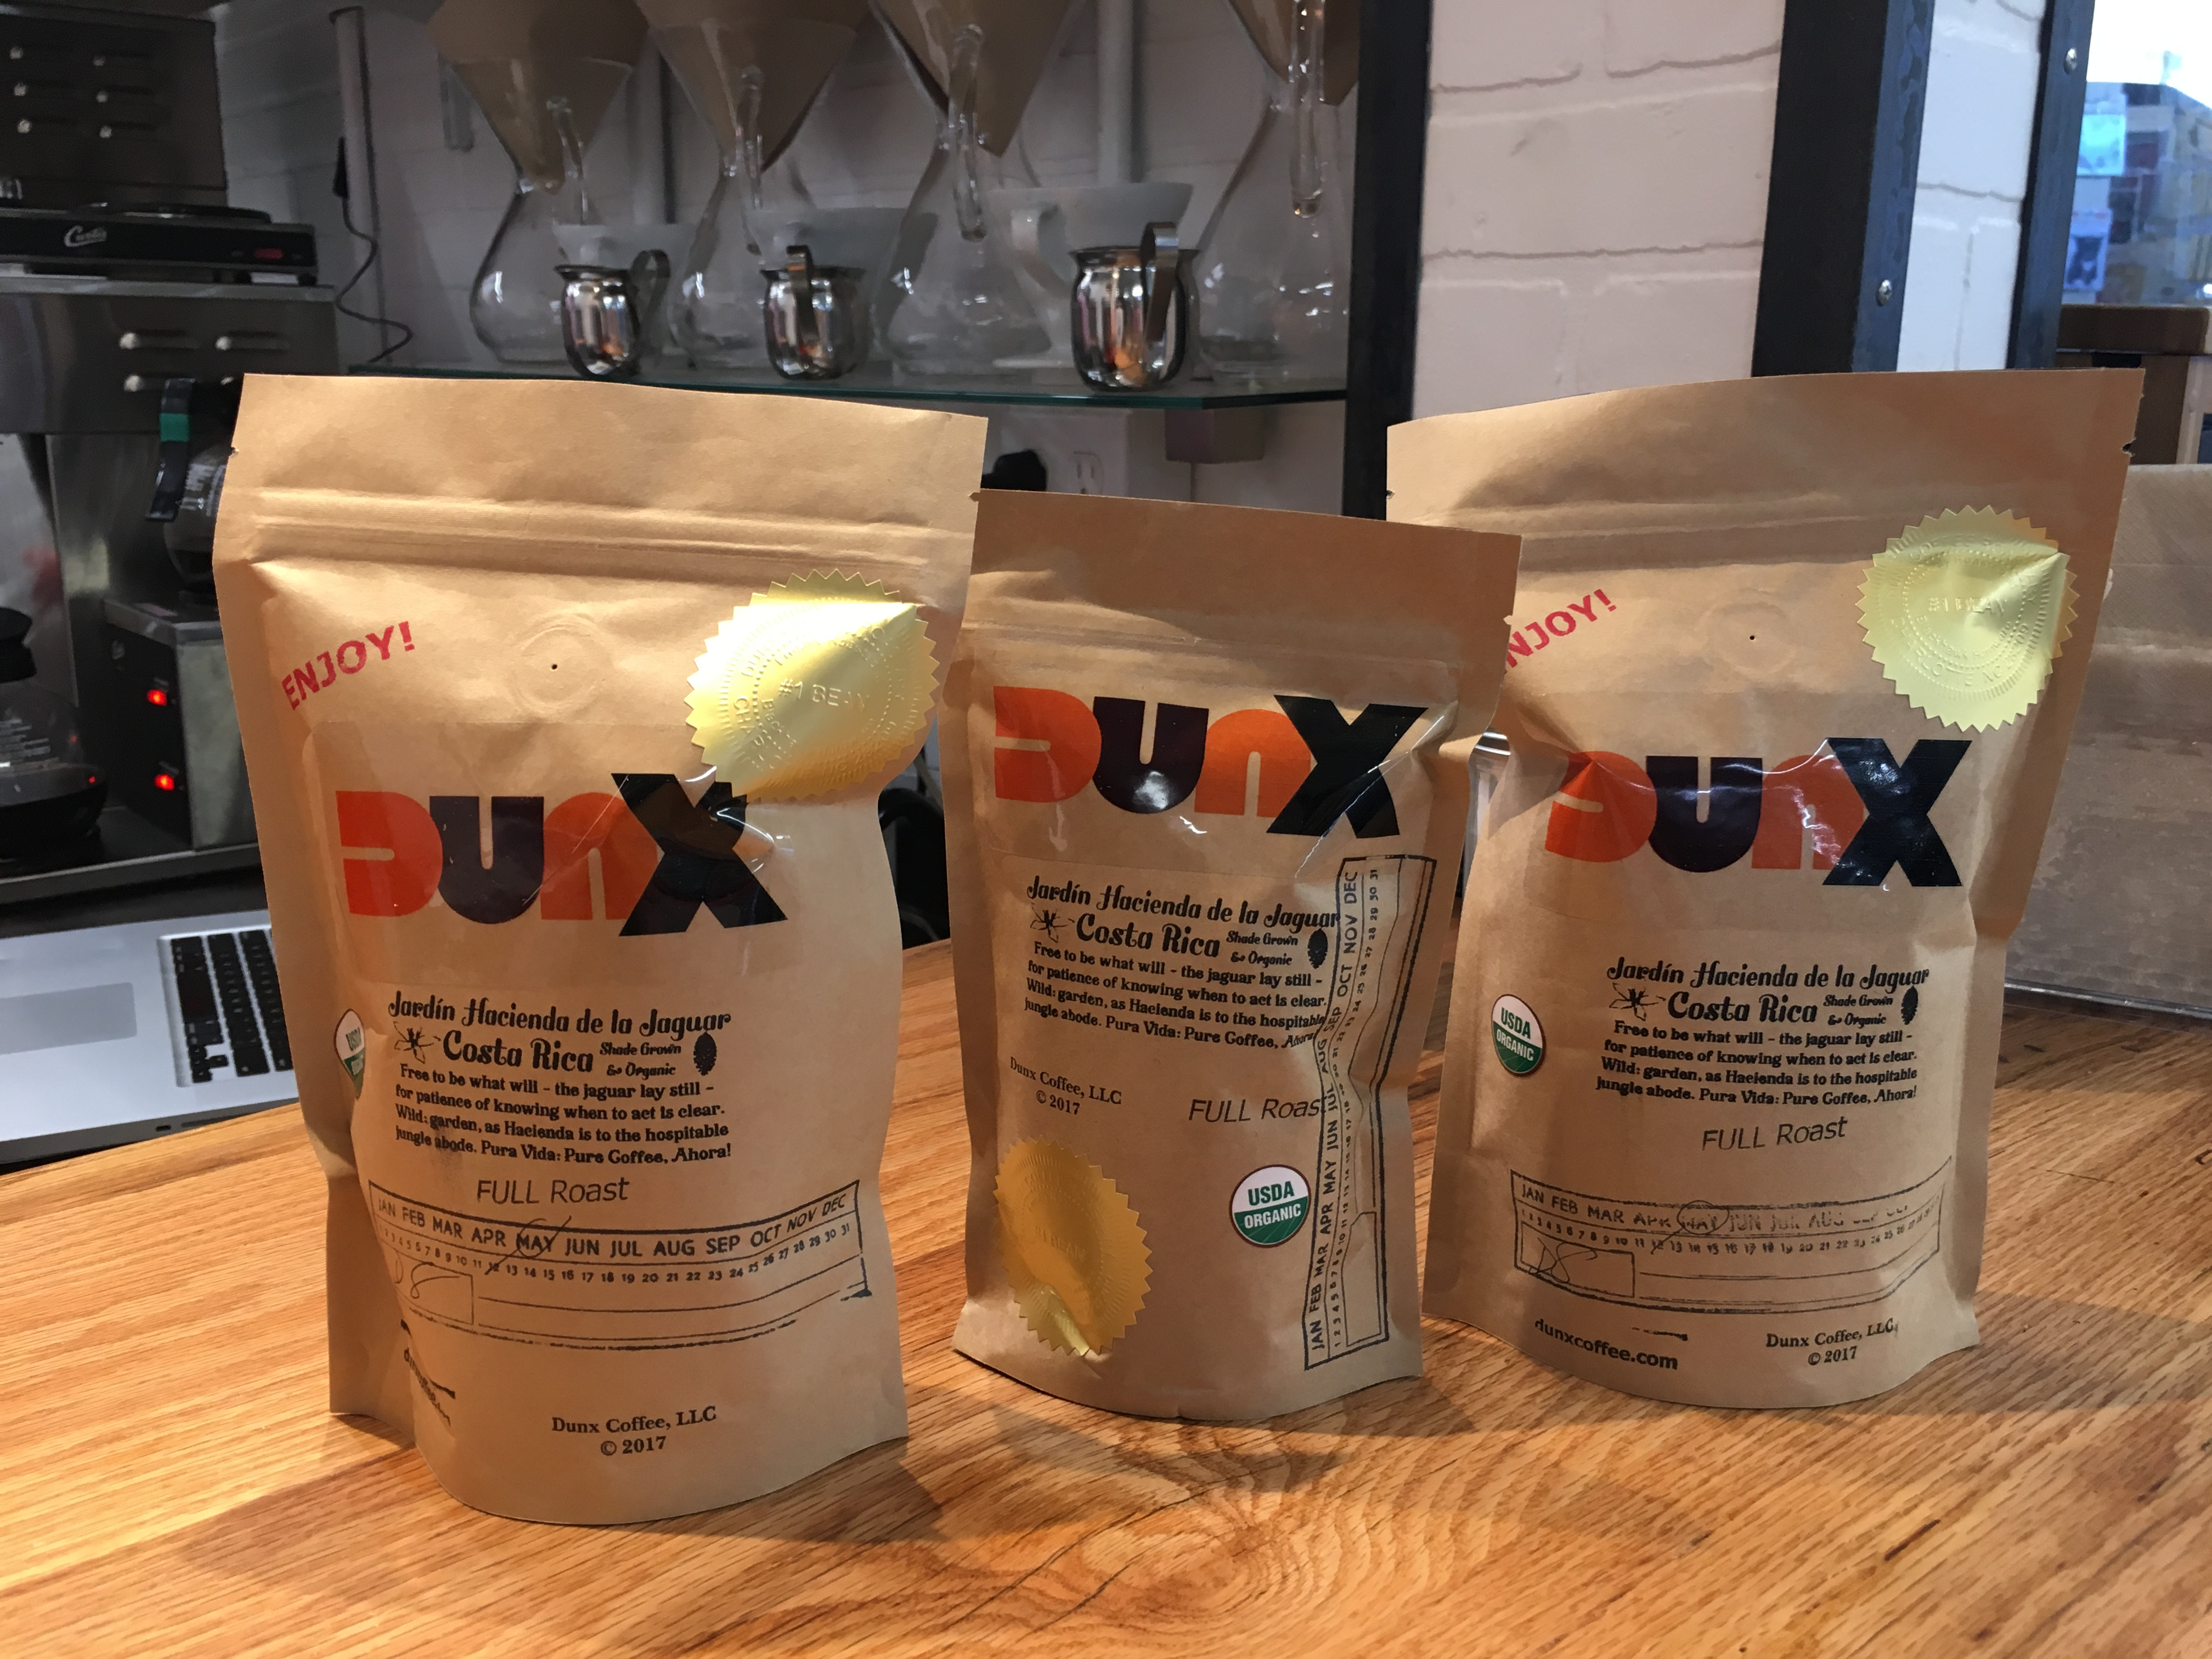 Grab a bag of DUNX beans for home brewing.